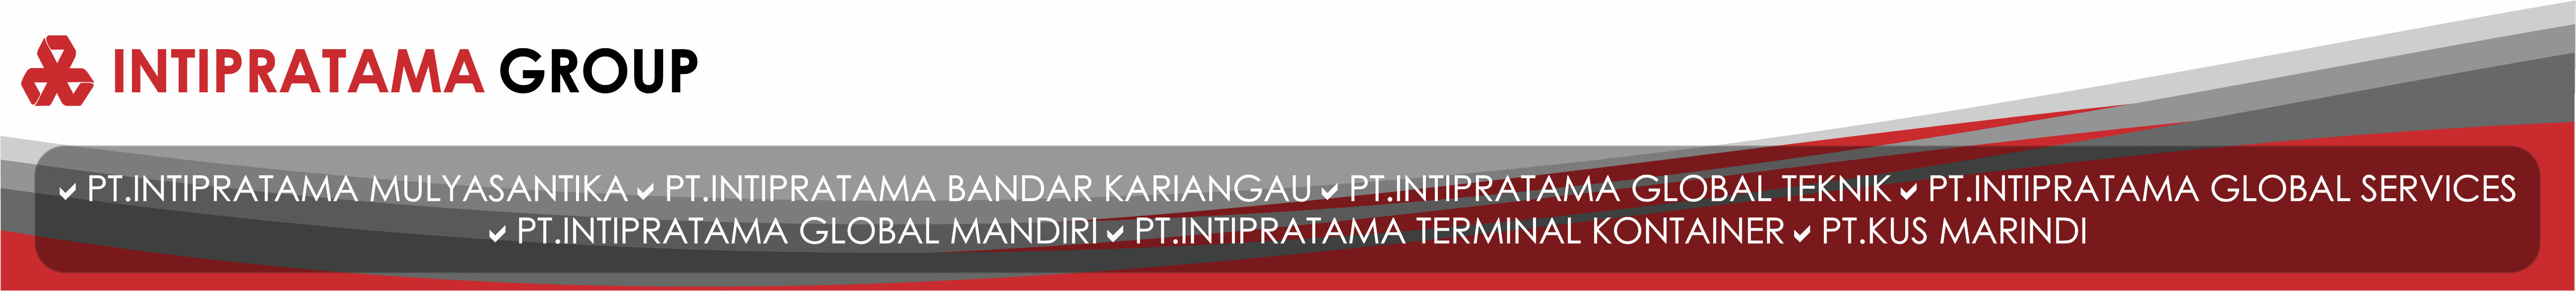 Intipratama Group